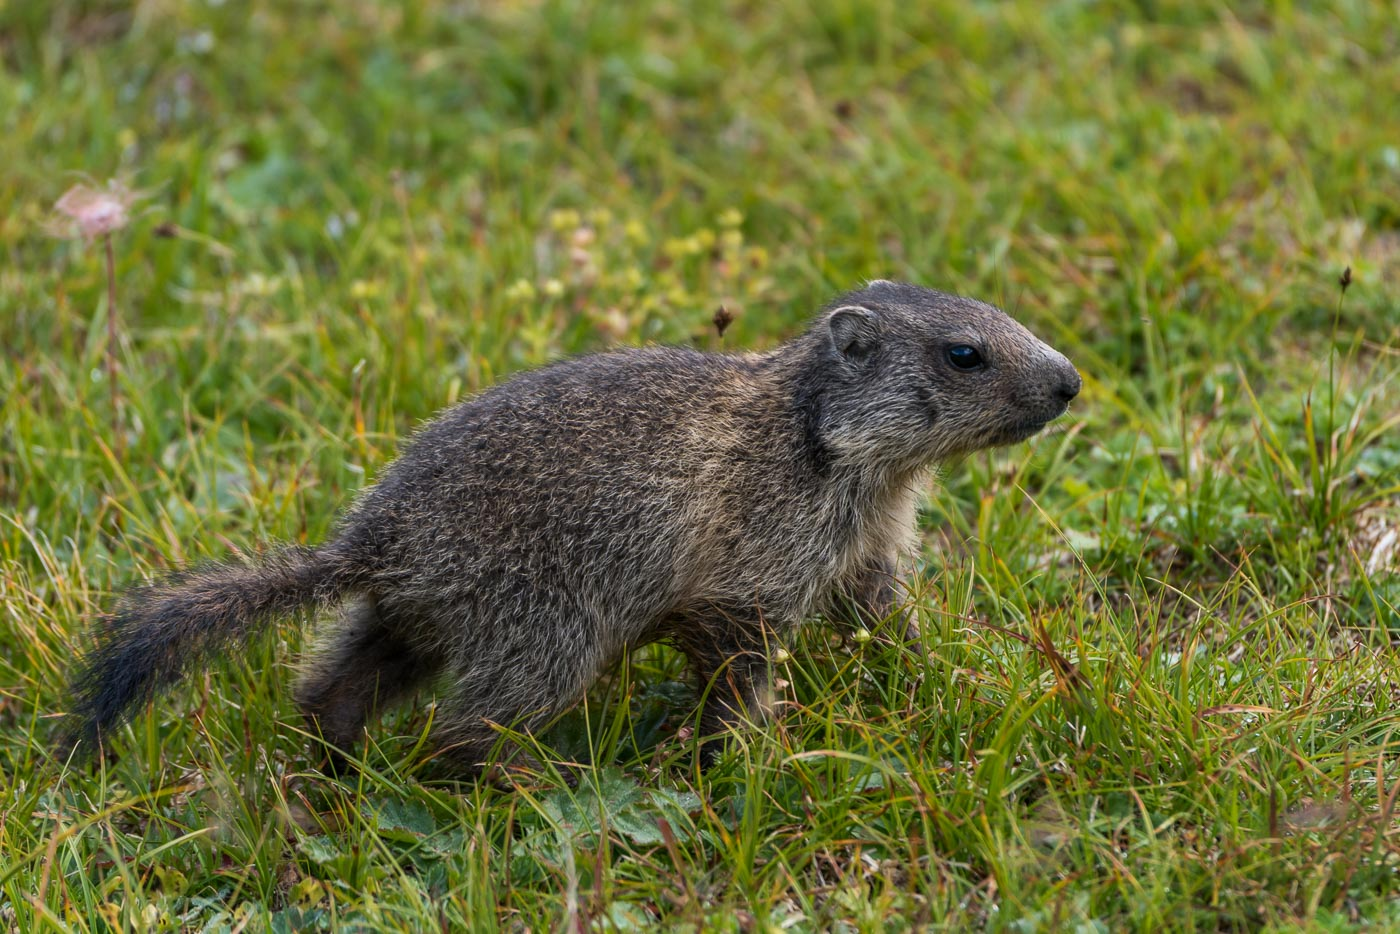 Junges Murmeltiere [Marmota]